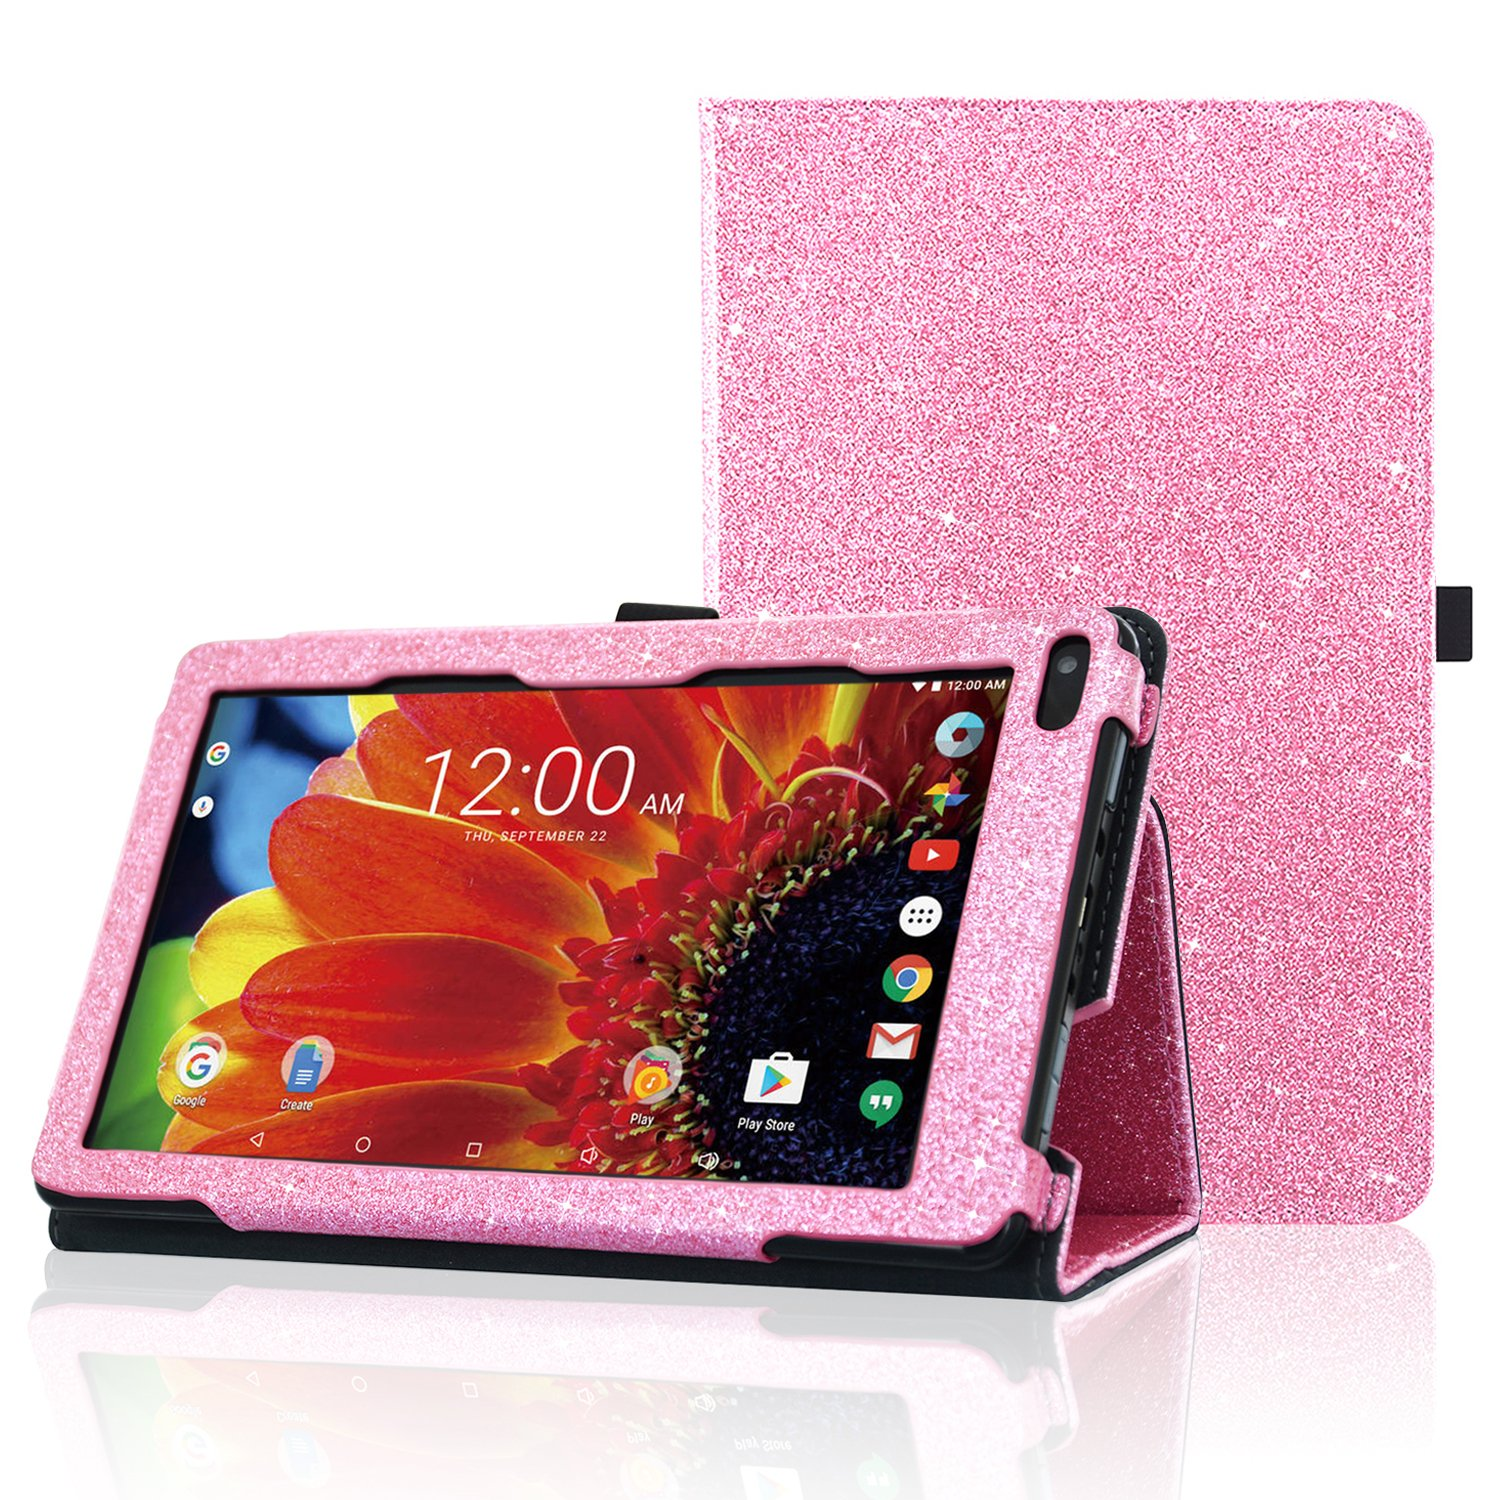 ACdream RCA Voyager 7 Case, Folio Premium PU Leather Cover Case for RCA Voyager 7'' 16GB/8 GB Tablet Android 6.0 (Marshmallow), Pink Star of Paris